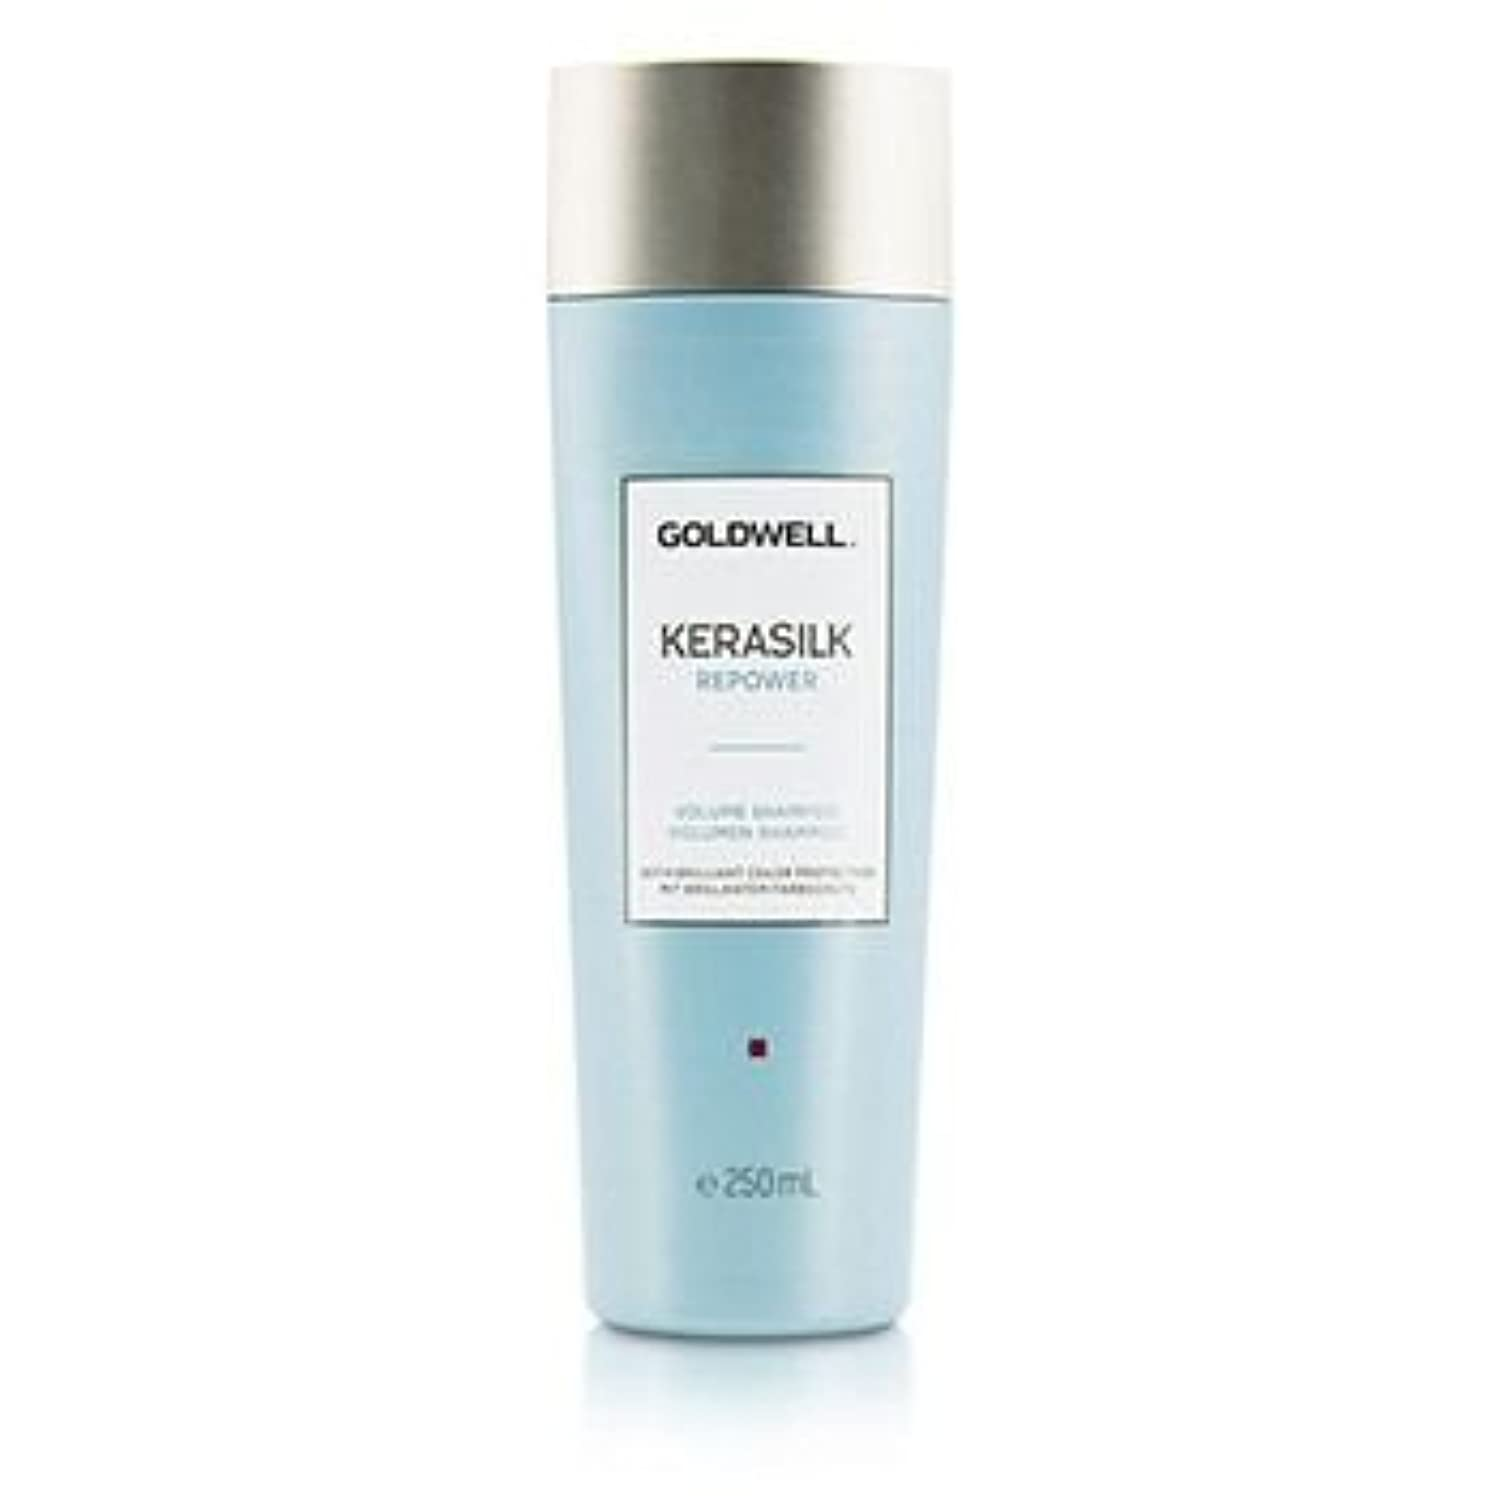 肌ハンカチ蓋[Goldwell] Kerasilk Repower Volume Shampoo (For Fine Limp Hair) 250ml/8.4oz